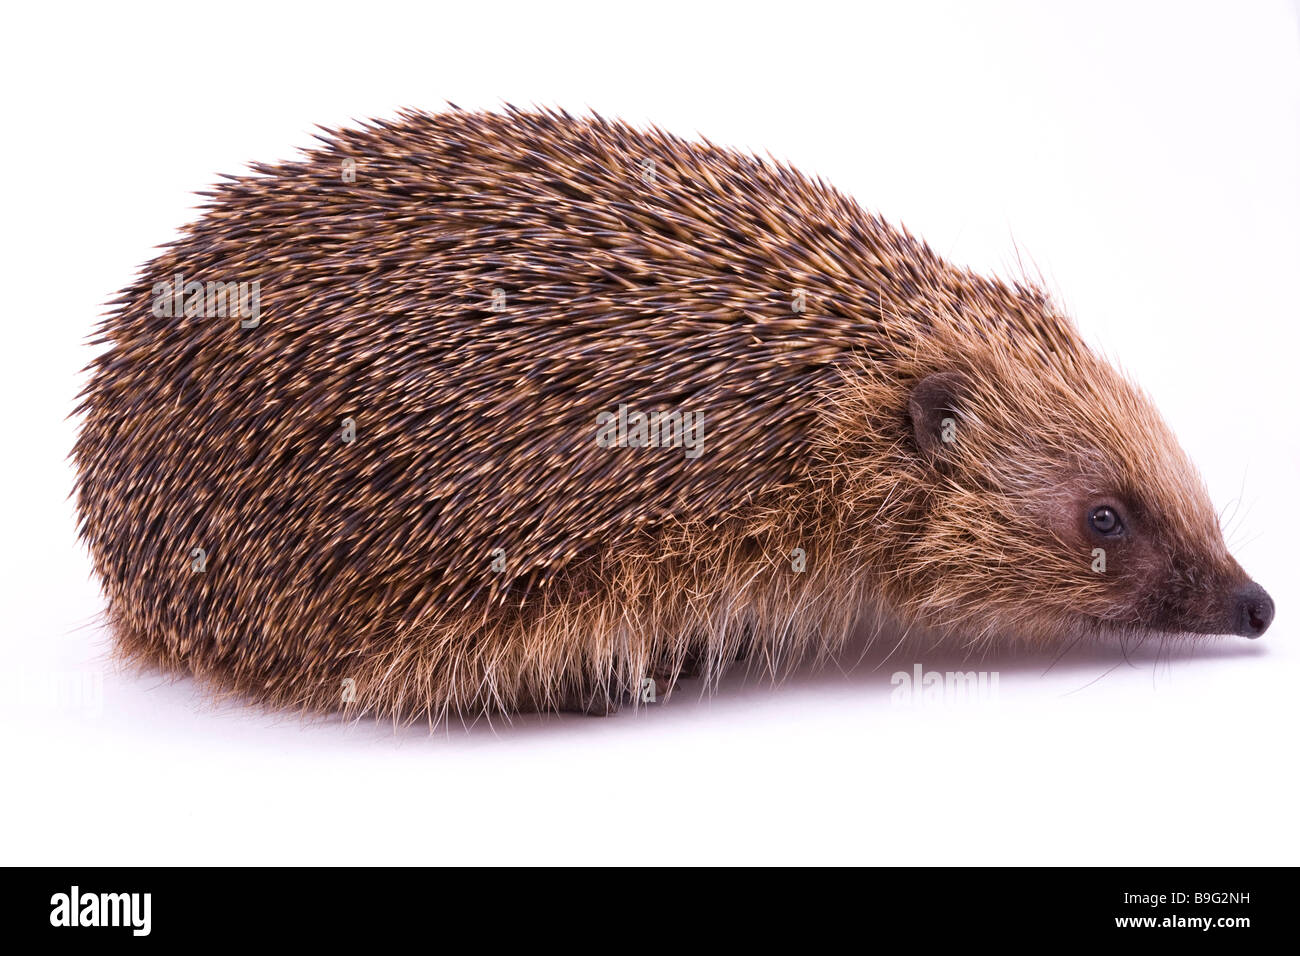 British isles Male Hedgehog on White Background Stock Photo